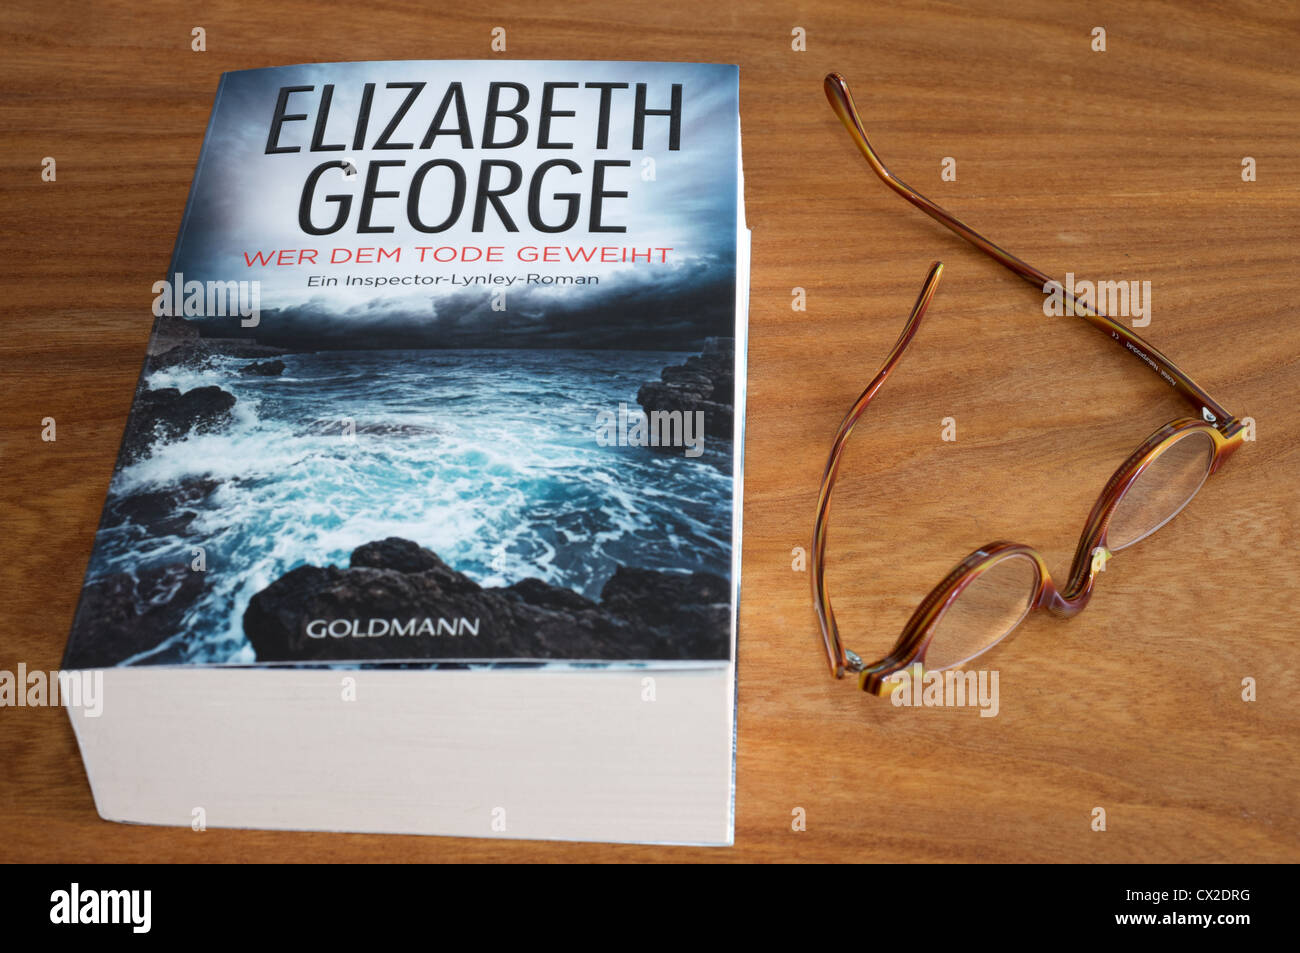 Wer Dem Tode Geweiht (This body of death) by Elizabeth George published in German by Goldmann - Stock Image